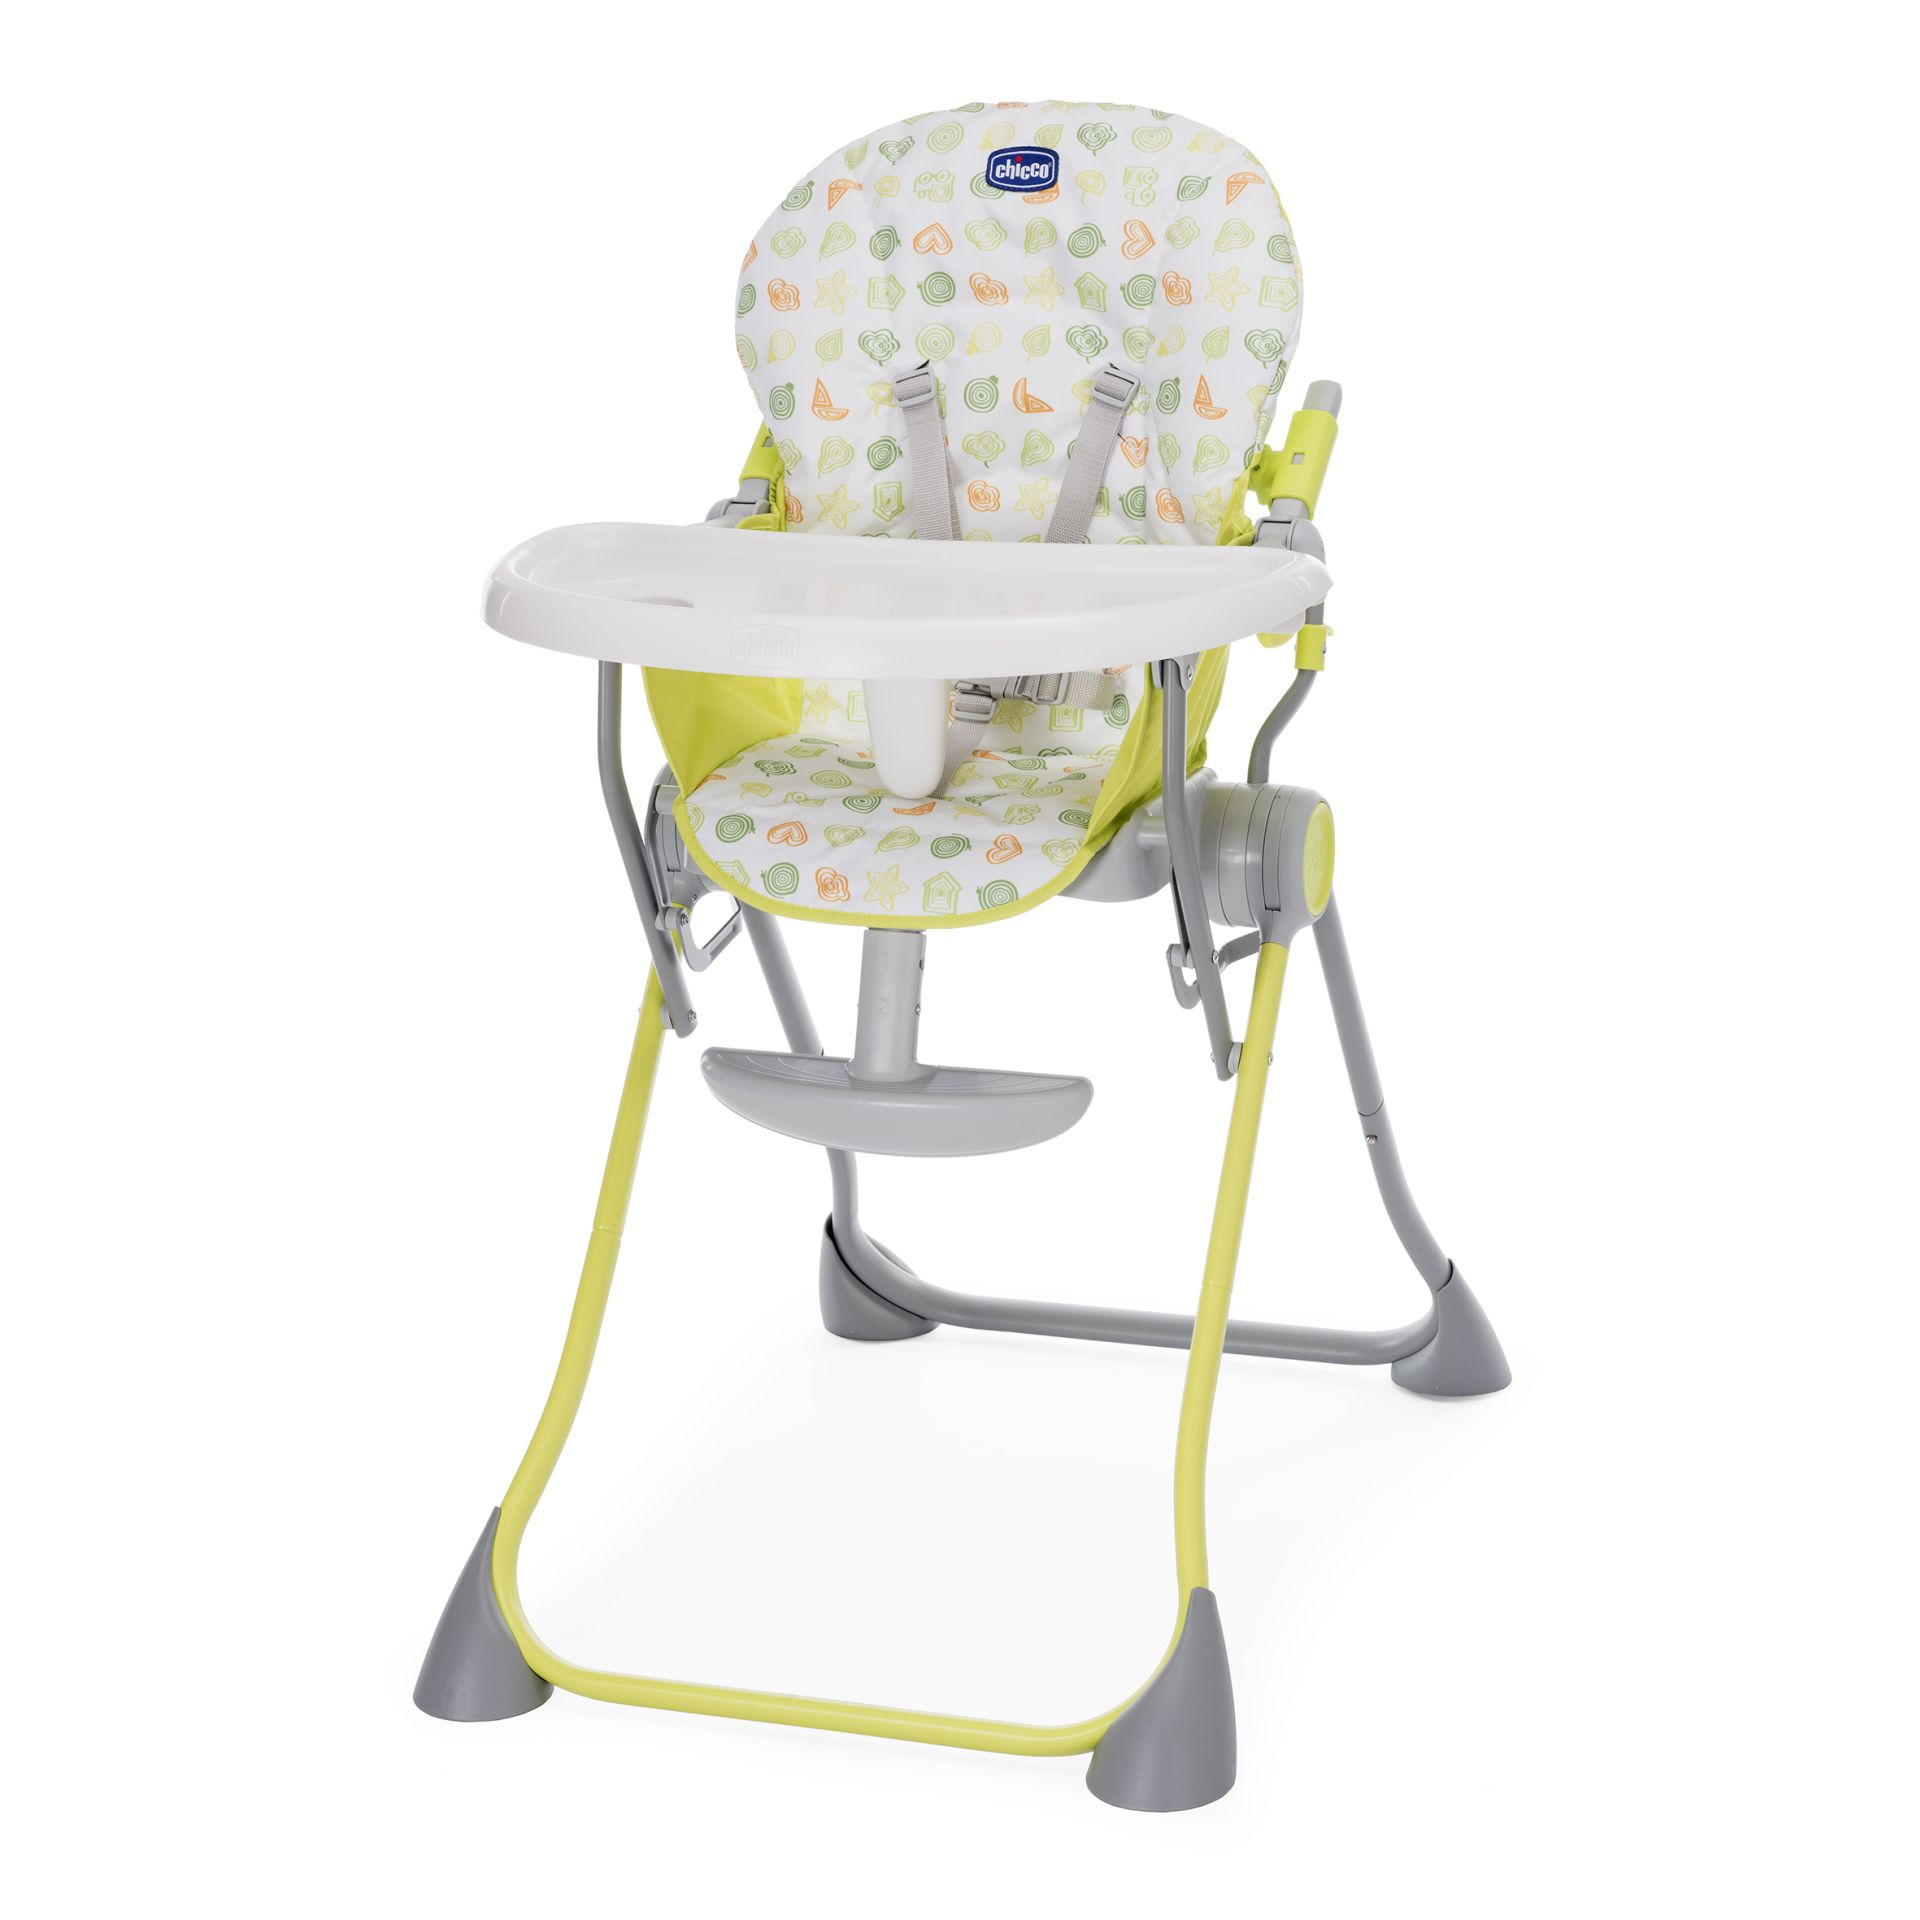 green high chair reupholster leather chicco highchair pocket meal 2018 apple buy at kidsroom design